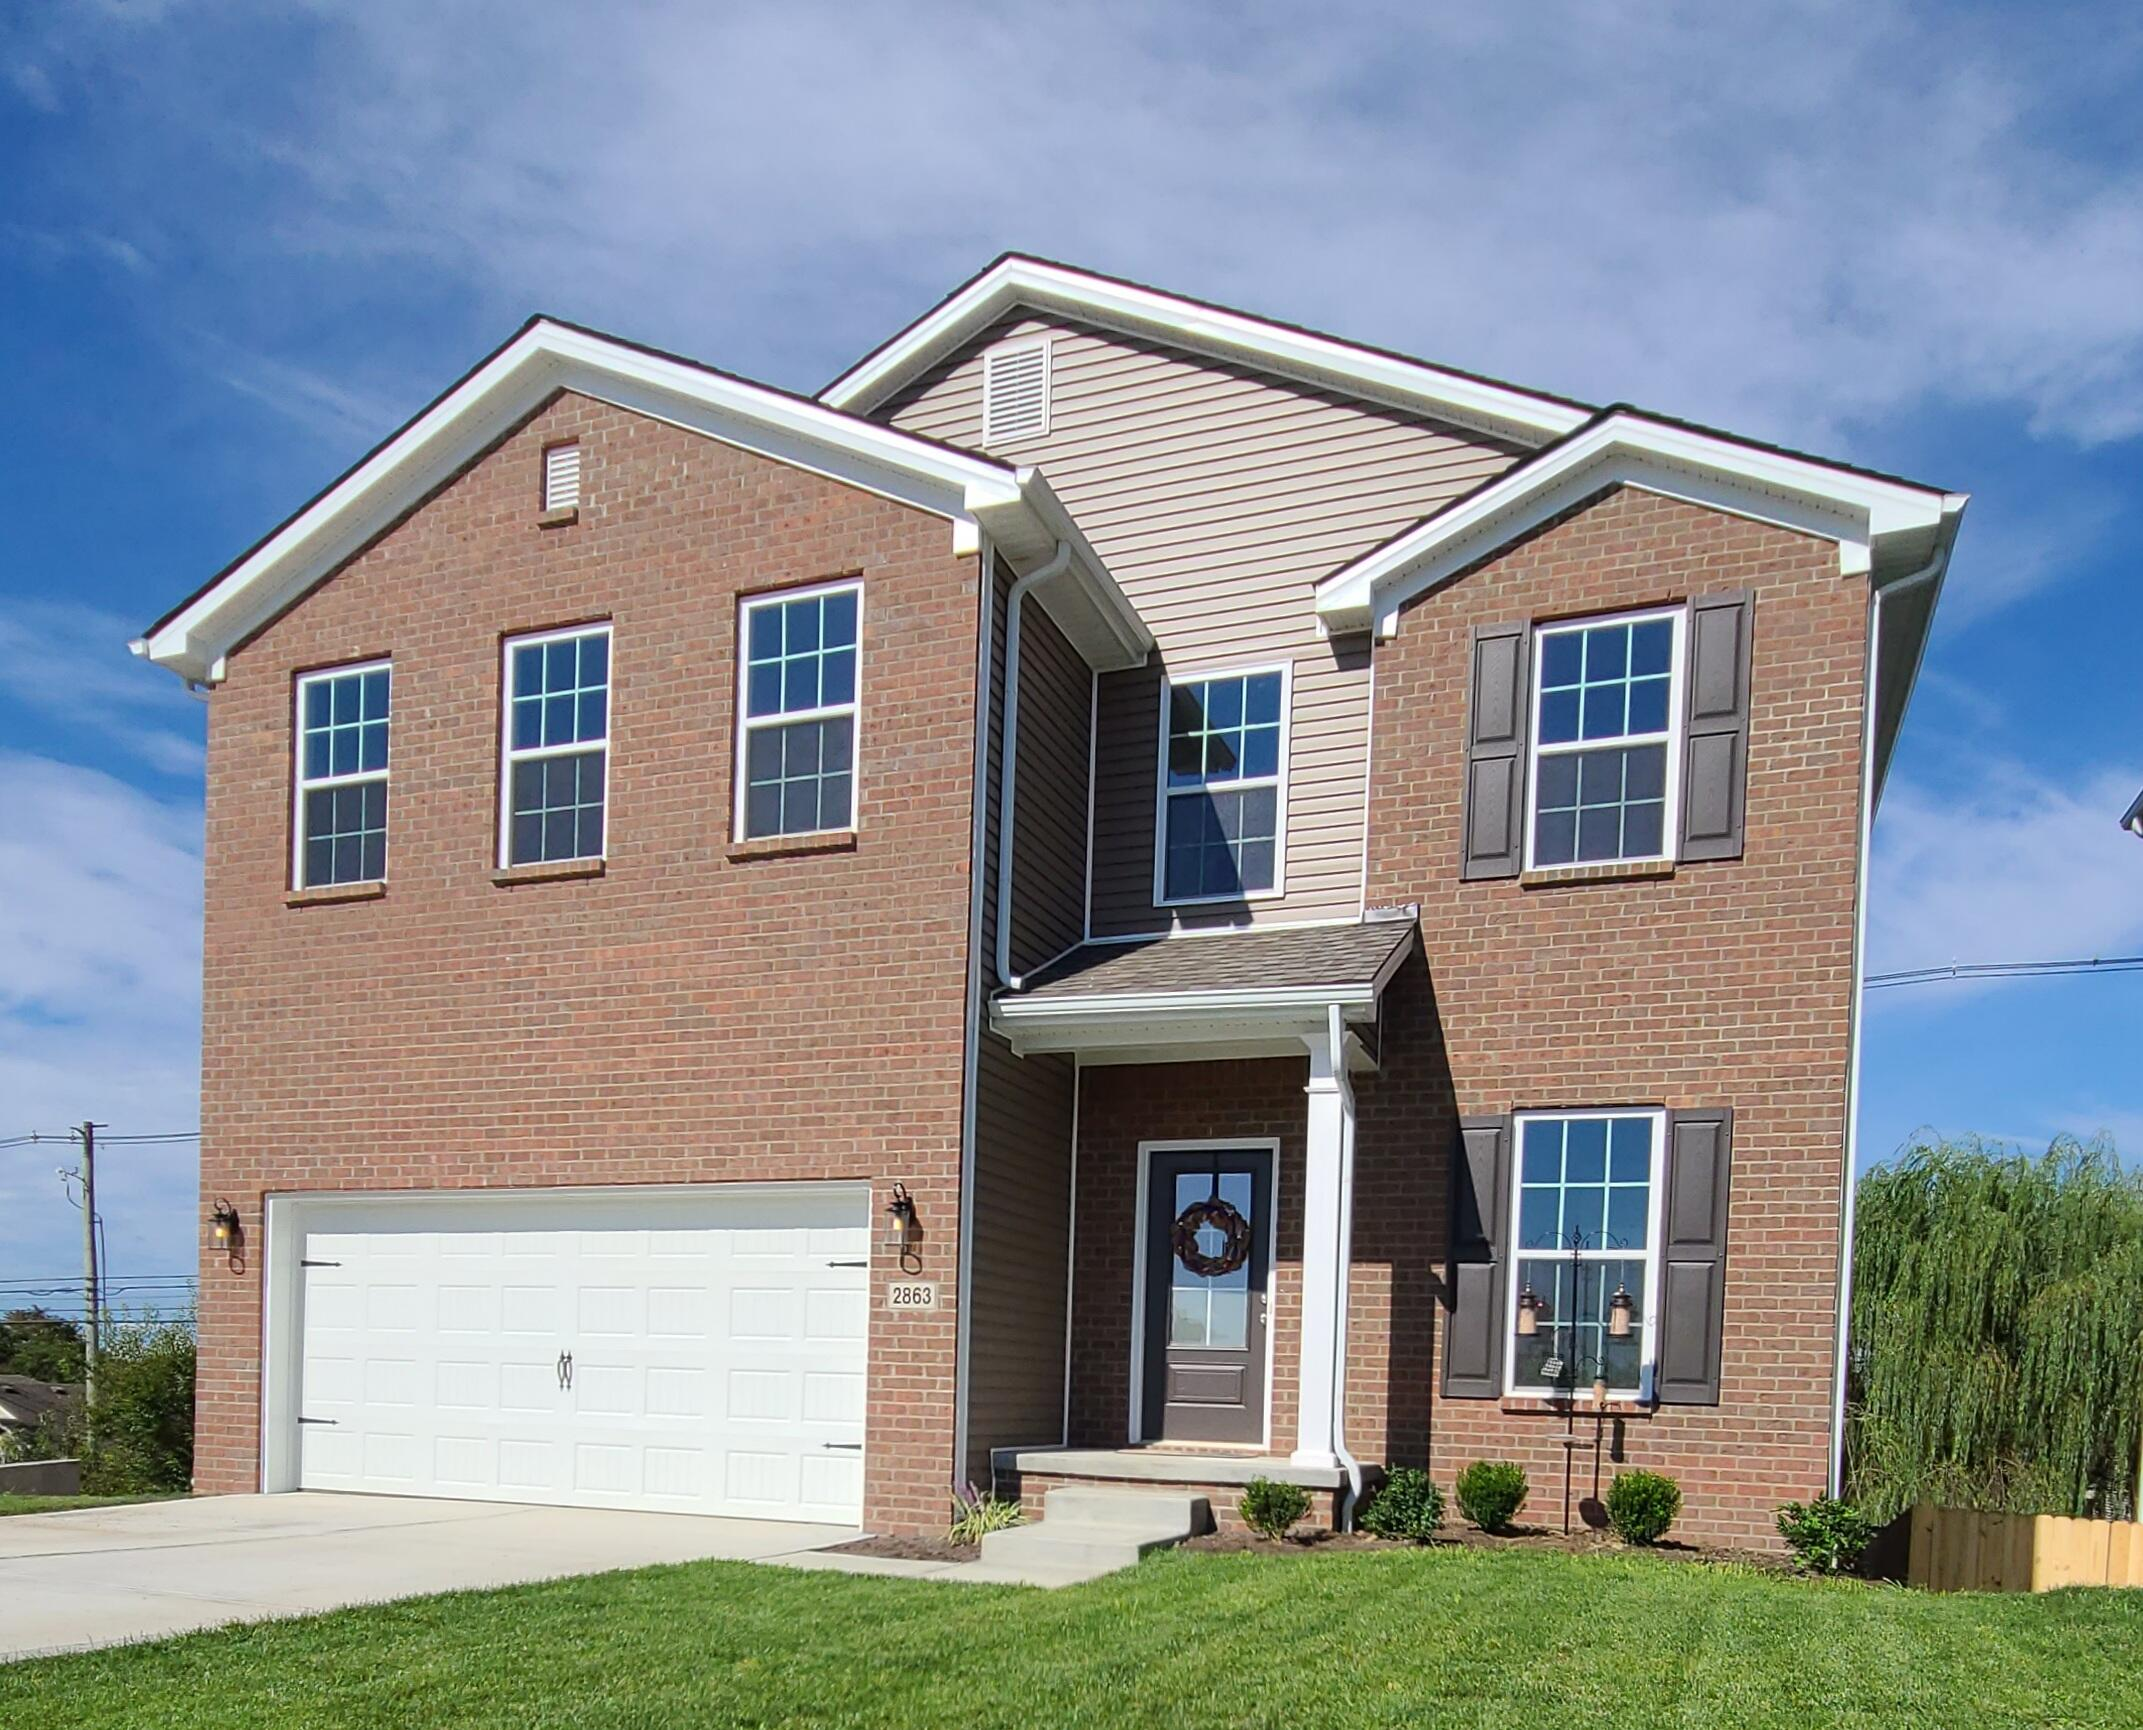 2863 Our Tibbs Trail, Lexington, Kentucky 40511, 4 Bedrooms Bedrooms, ,3 BathroomsBathrooms,Residential,For Sale,Our Tibbs,20120820